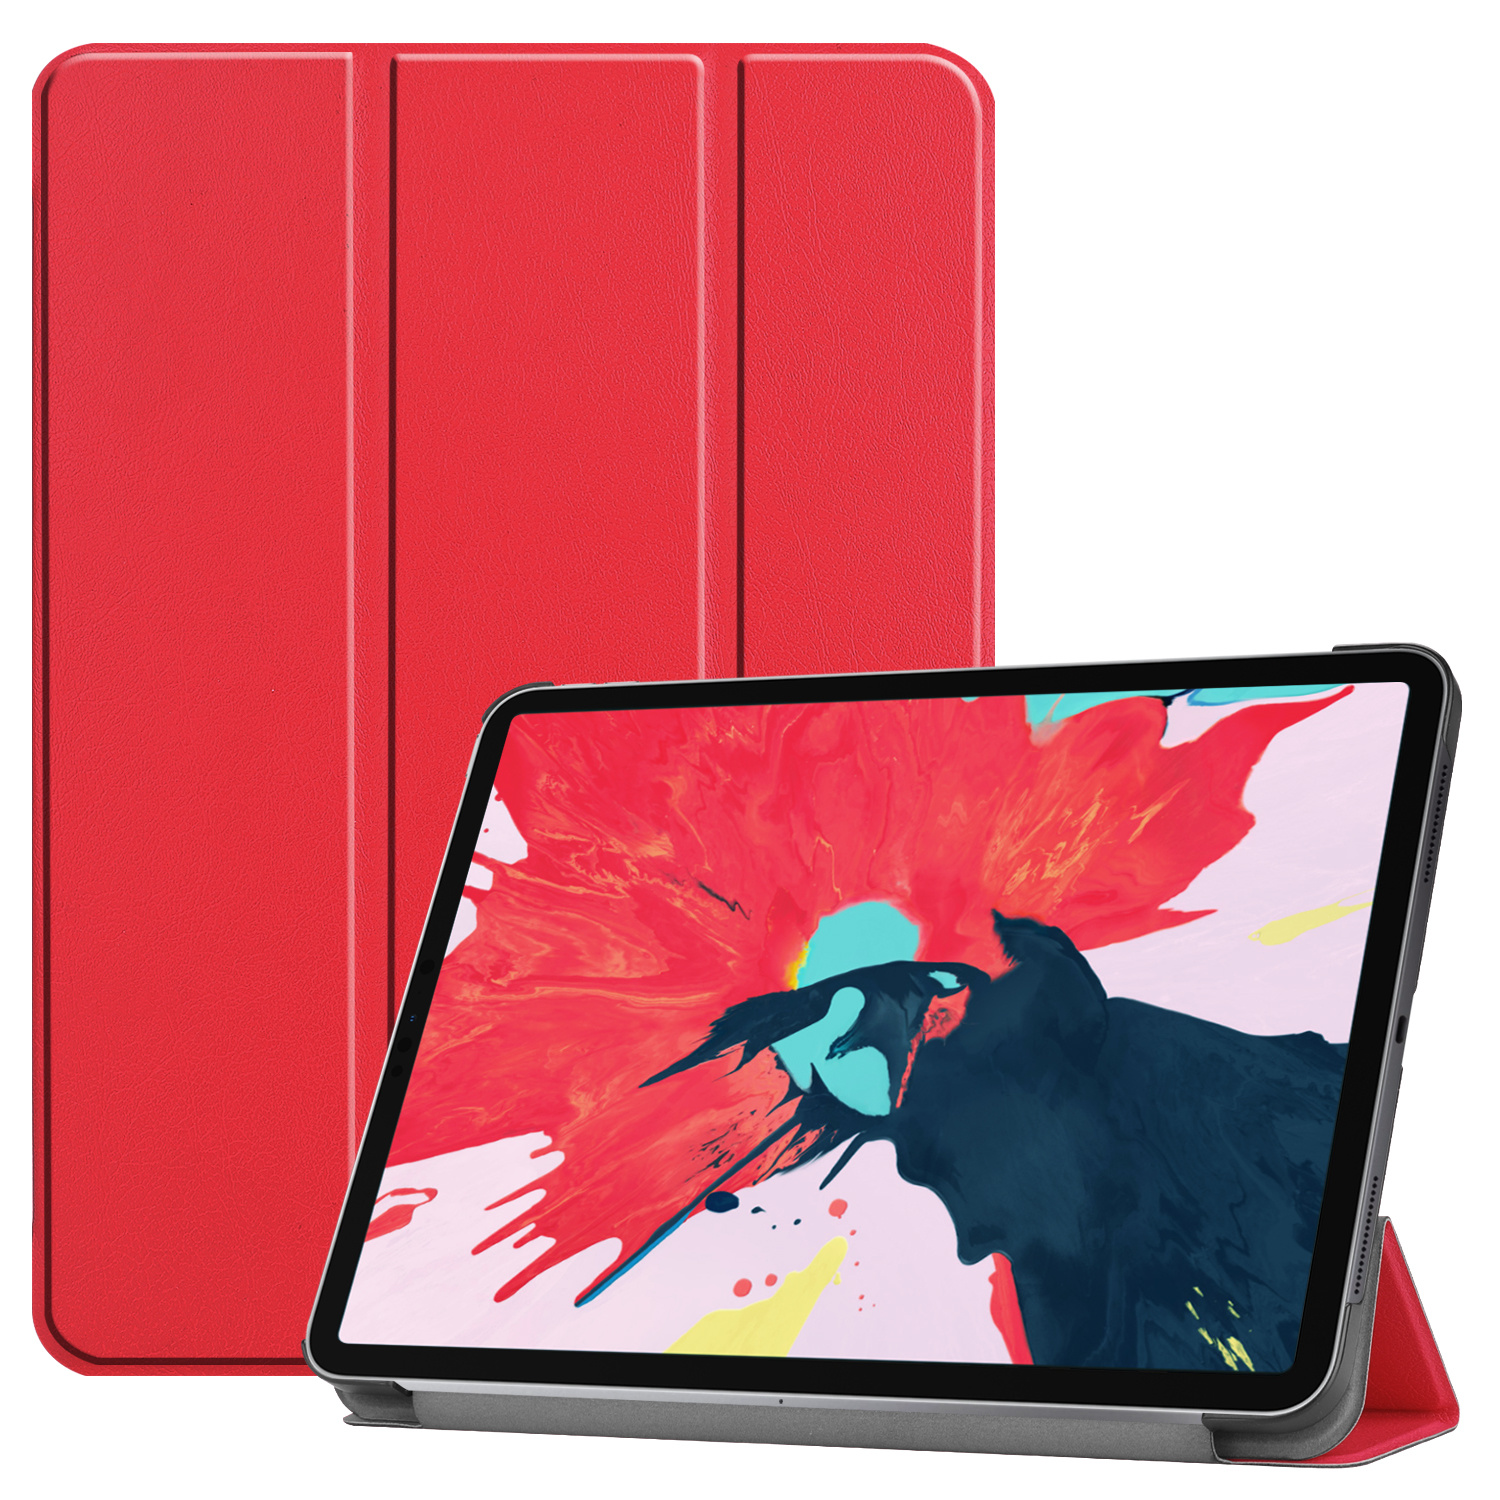 3-Vouw sleepcover hoes - iPad Pro 11 inch (2020) - Rood